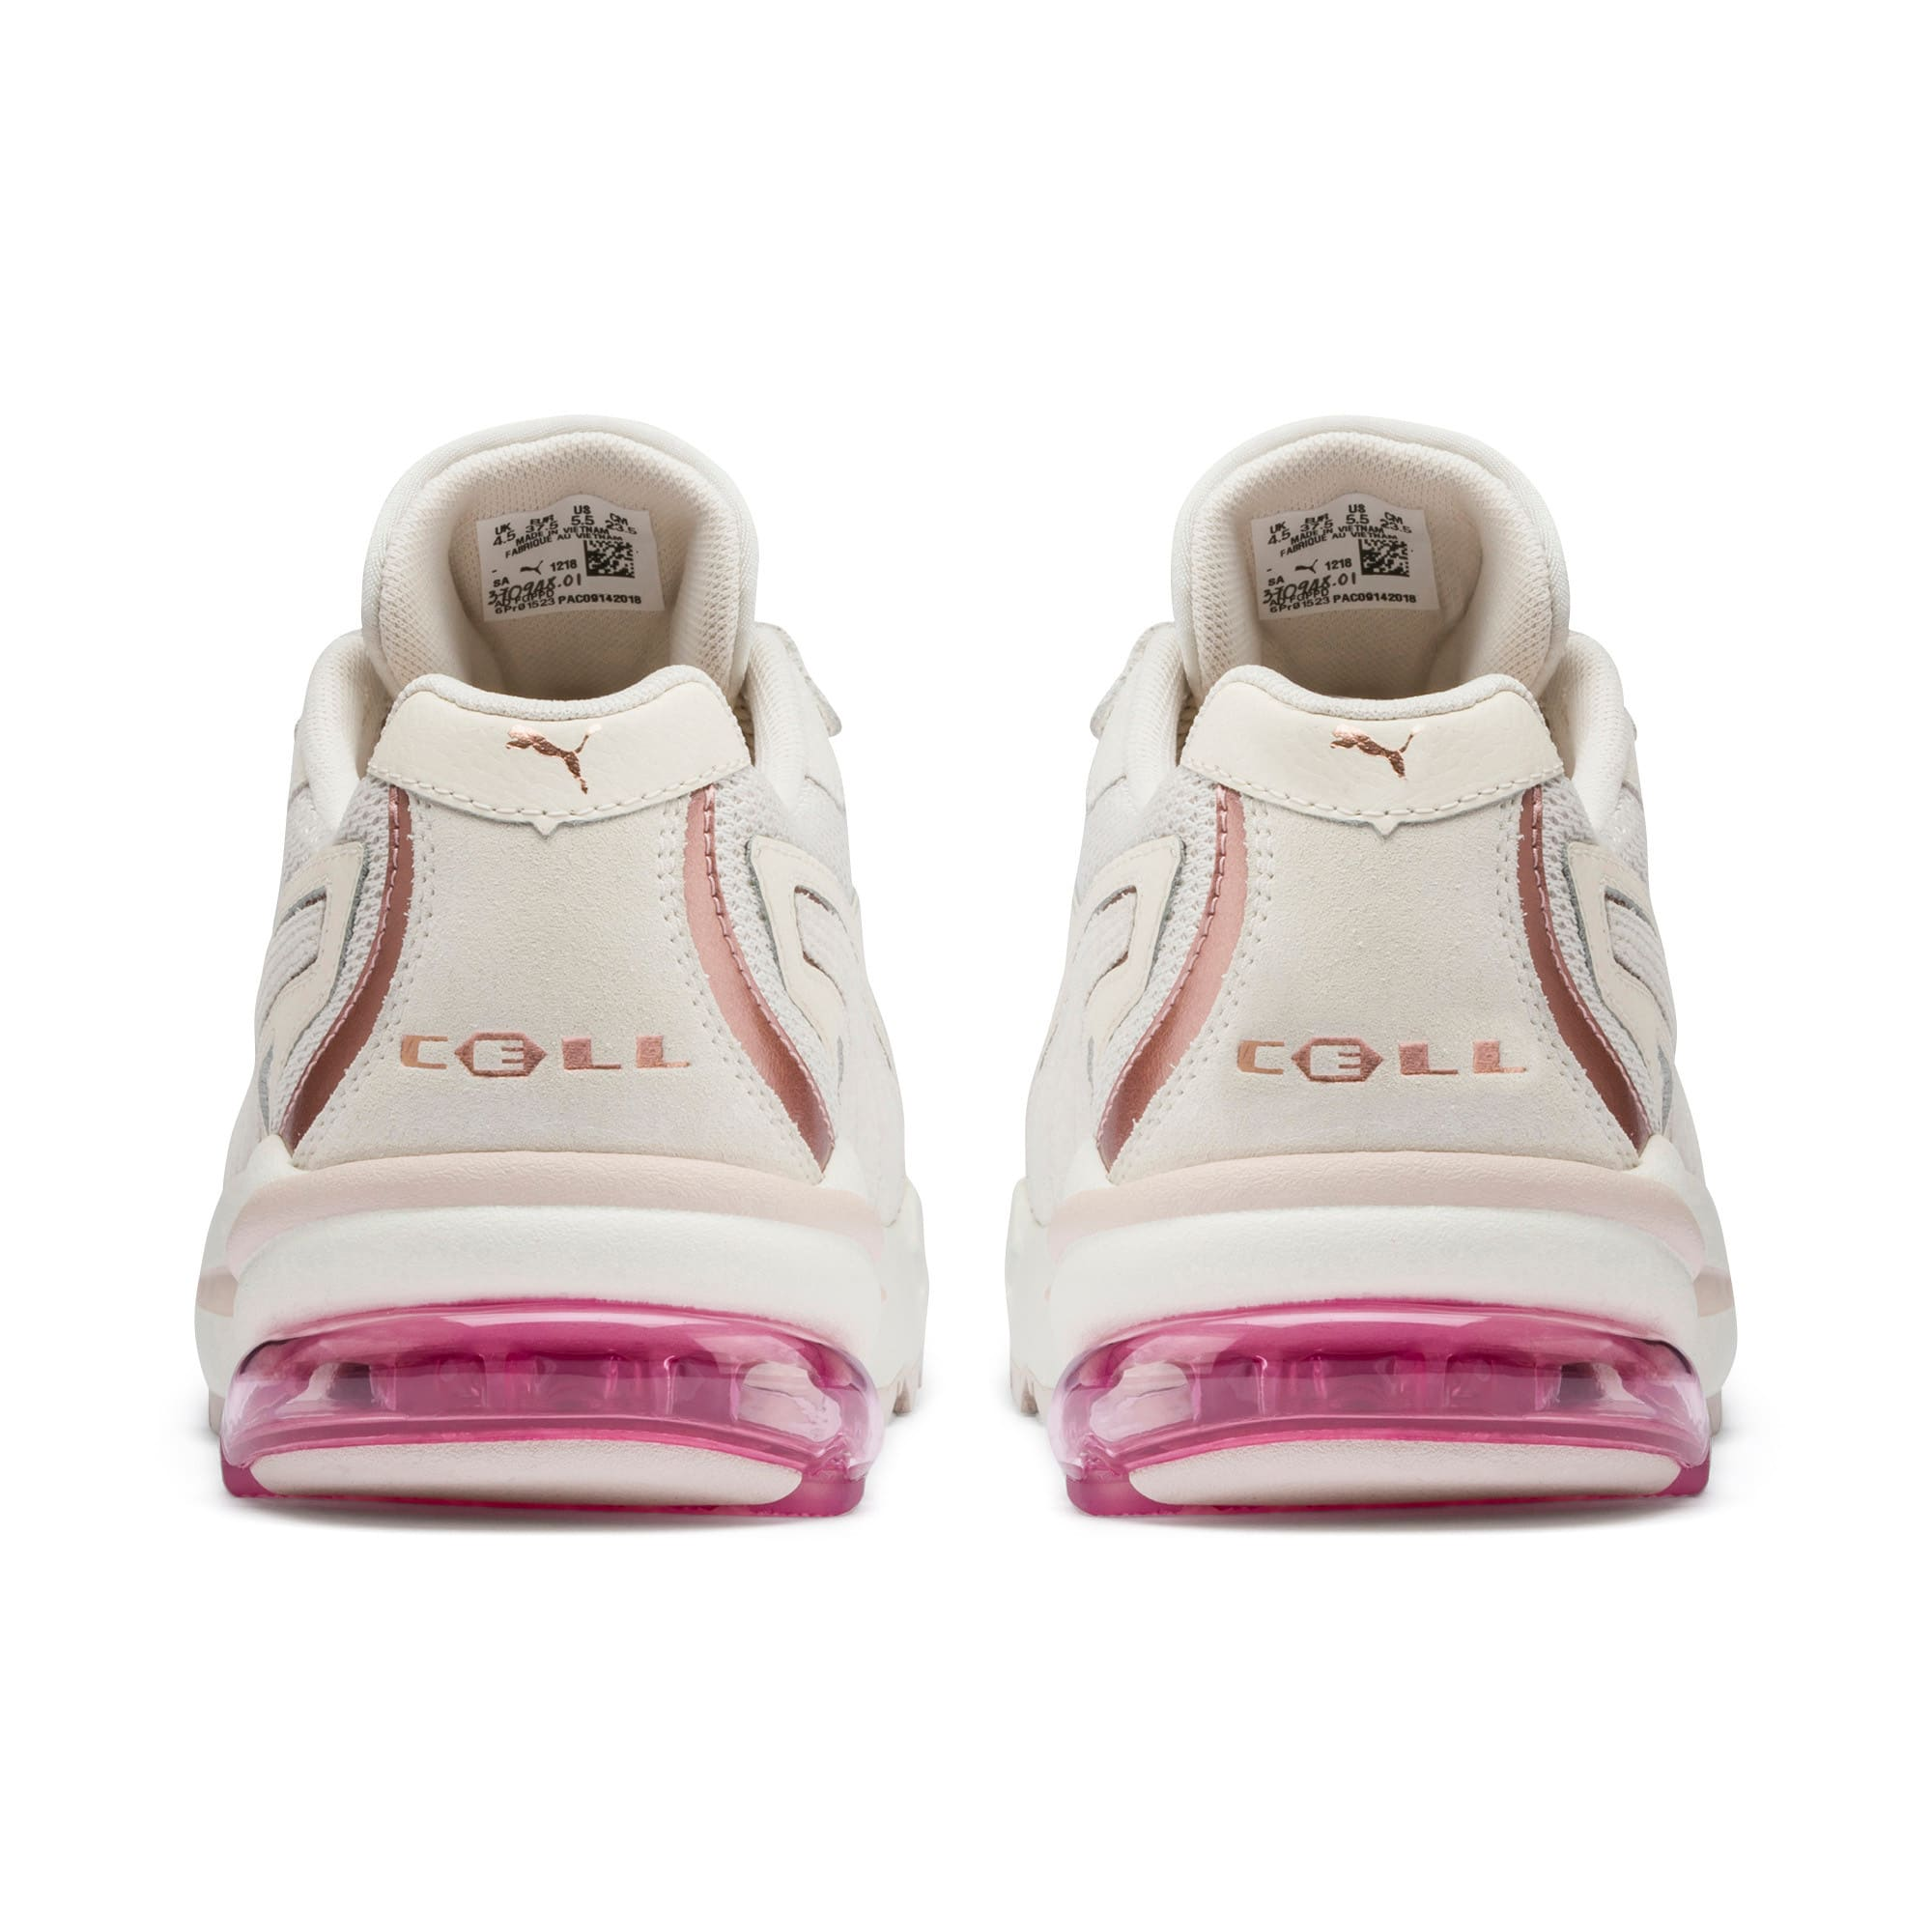 Thumbnail 4 of CELL Stellar Soft Women's Sneakers, Pastel Parchment-Rose Gold, medium